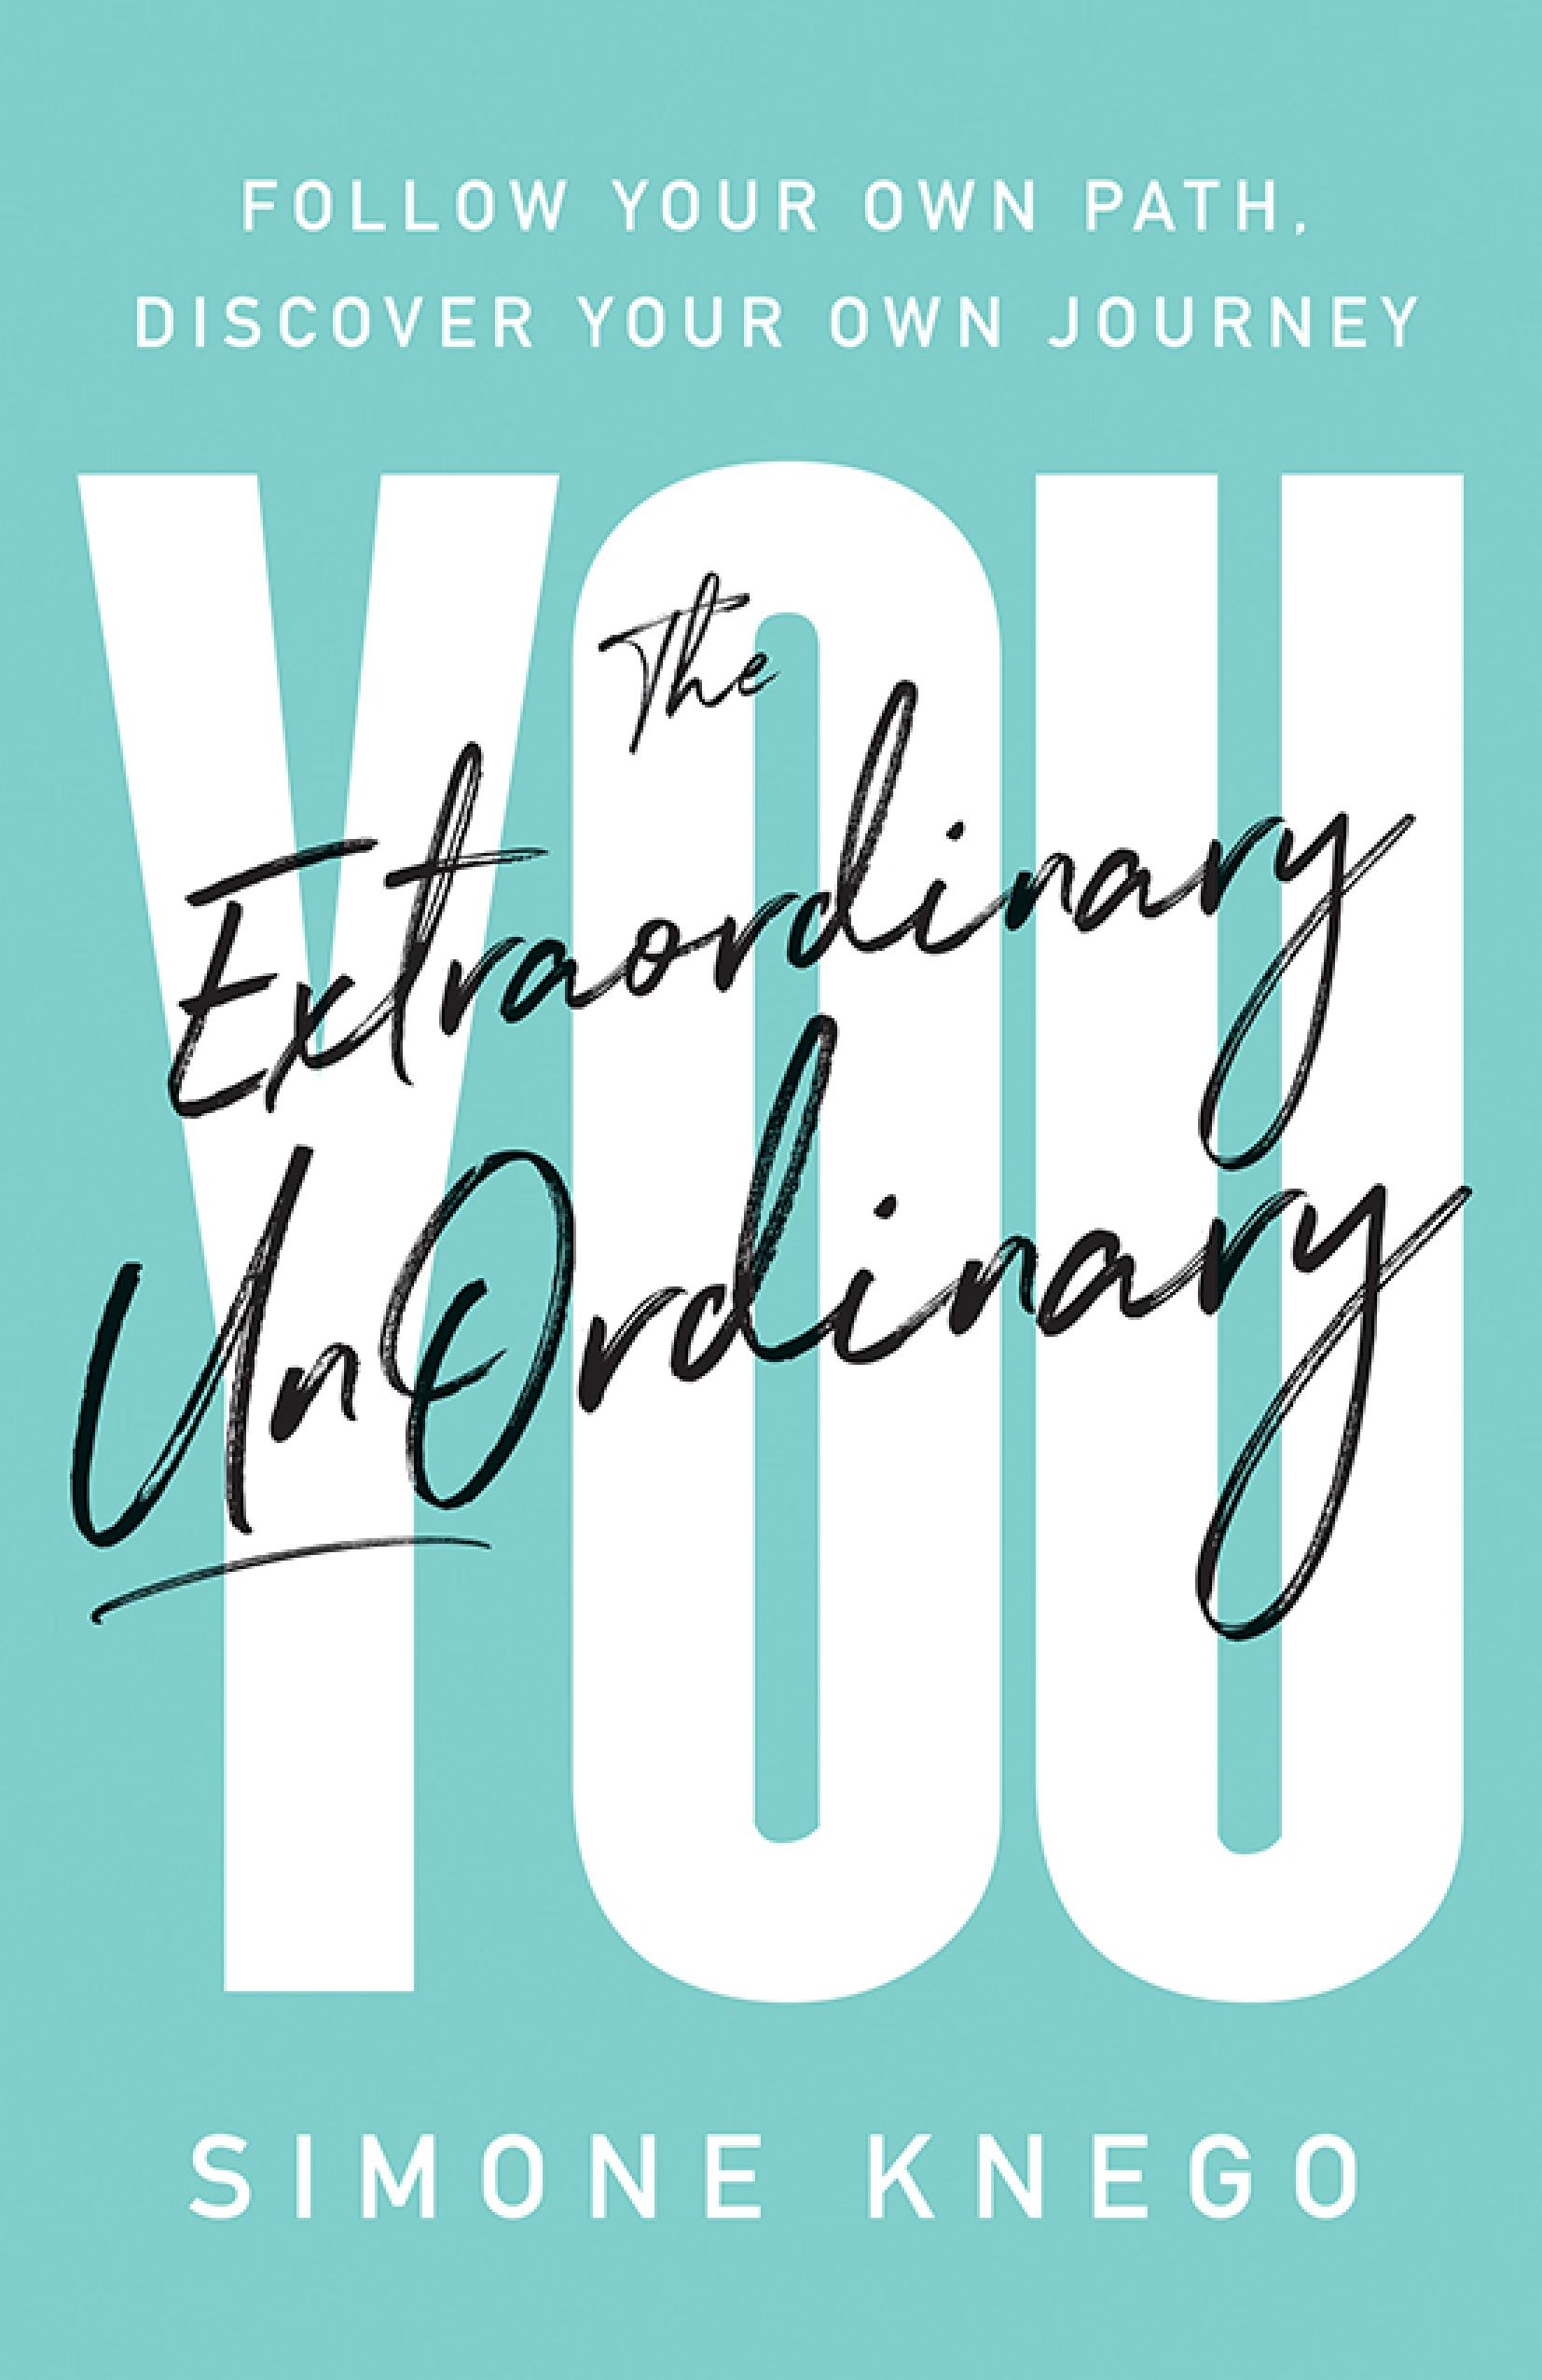 Image from Simone Knego's inspirational book The Extraordinary Unordinary You